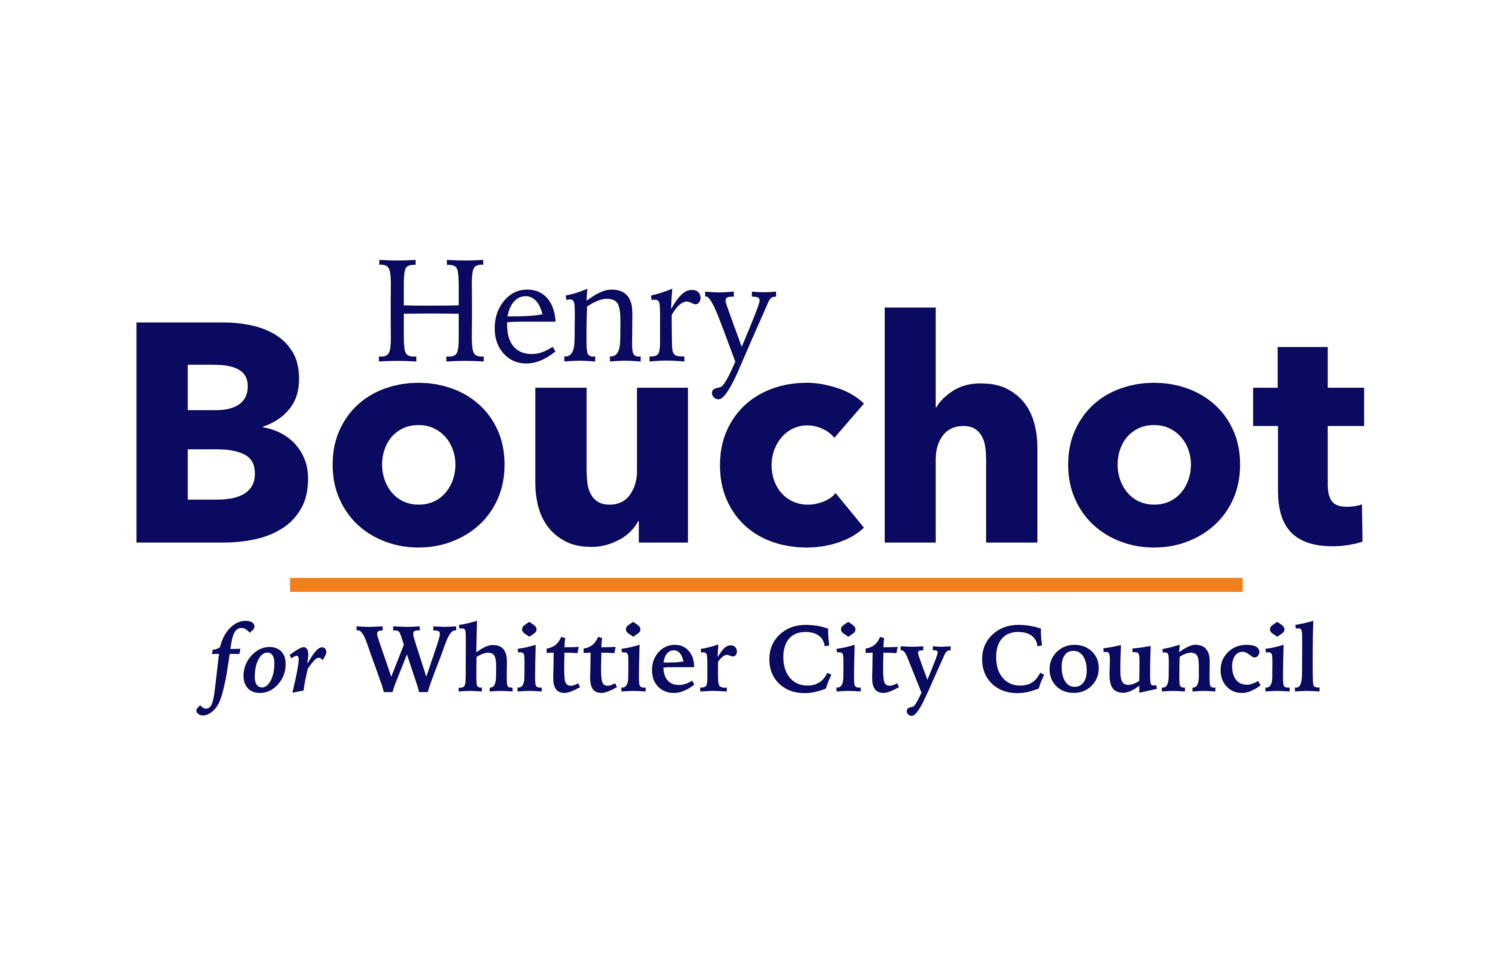 Bouchot for Whittier City Council